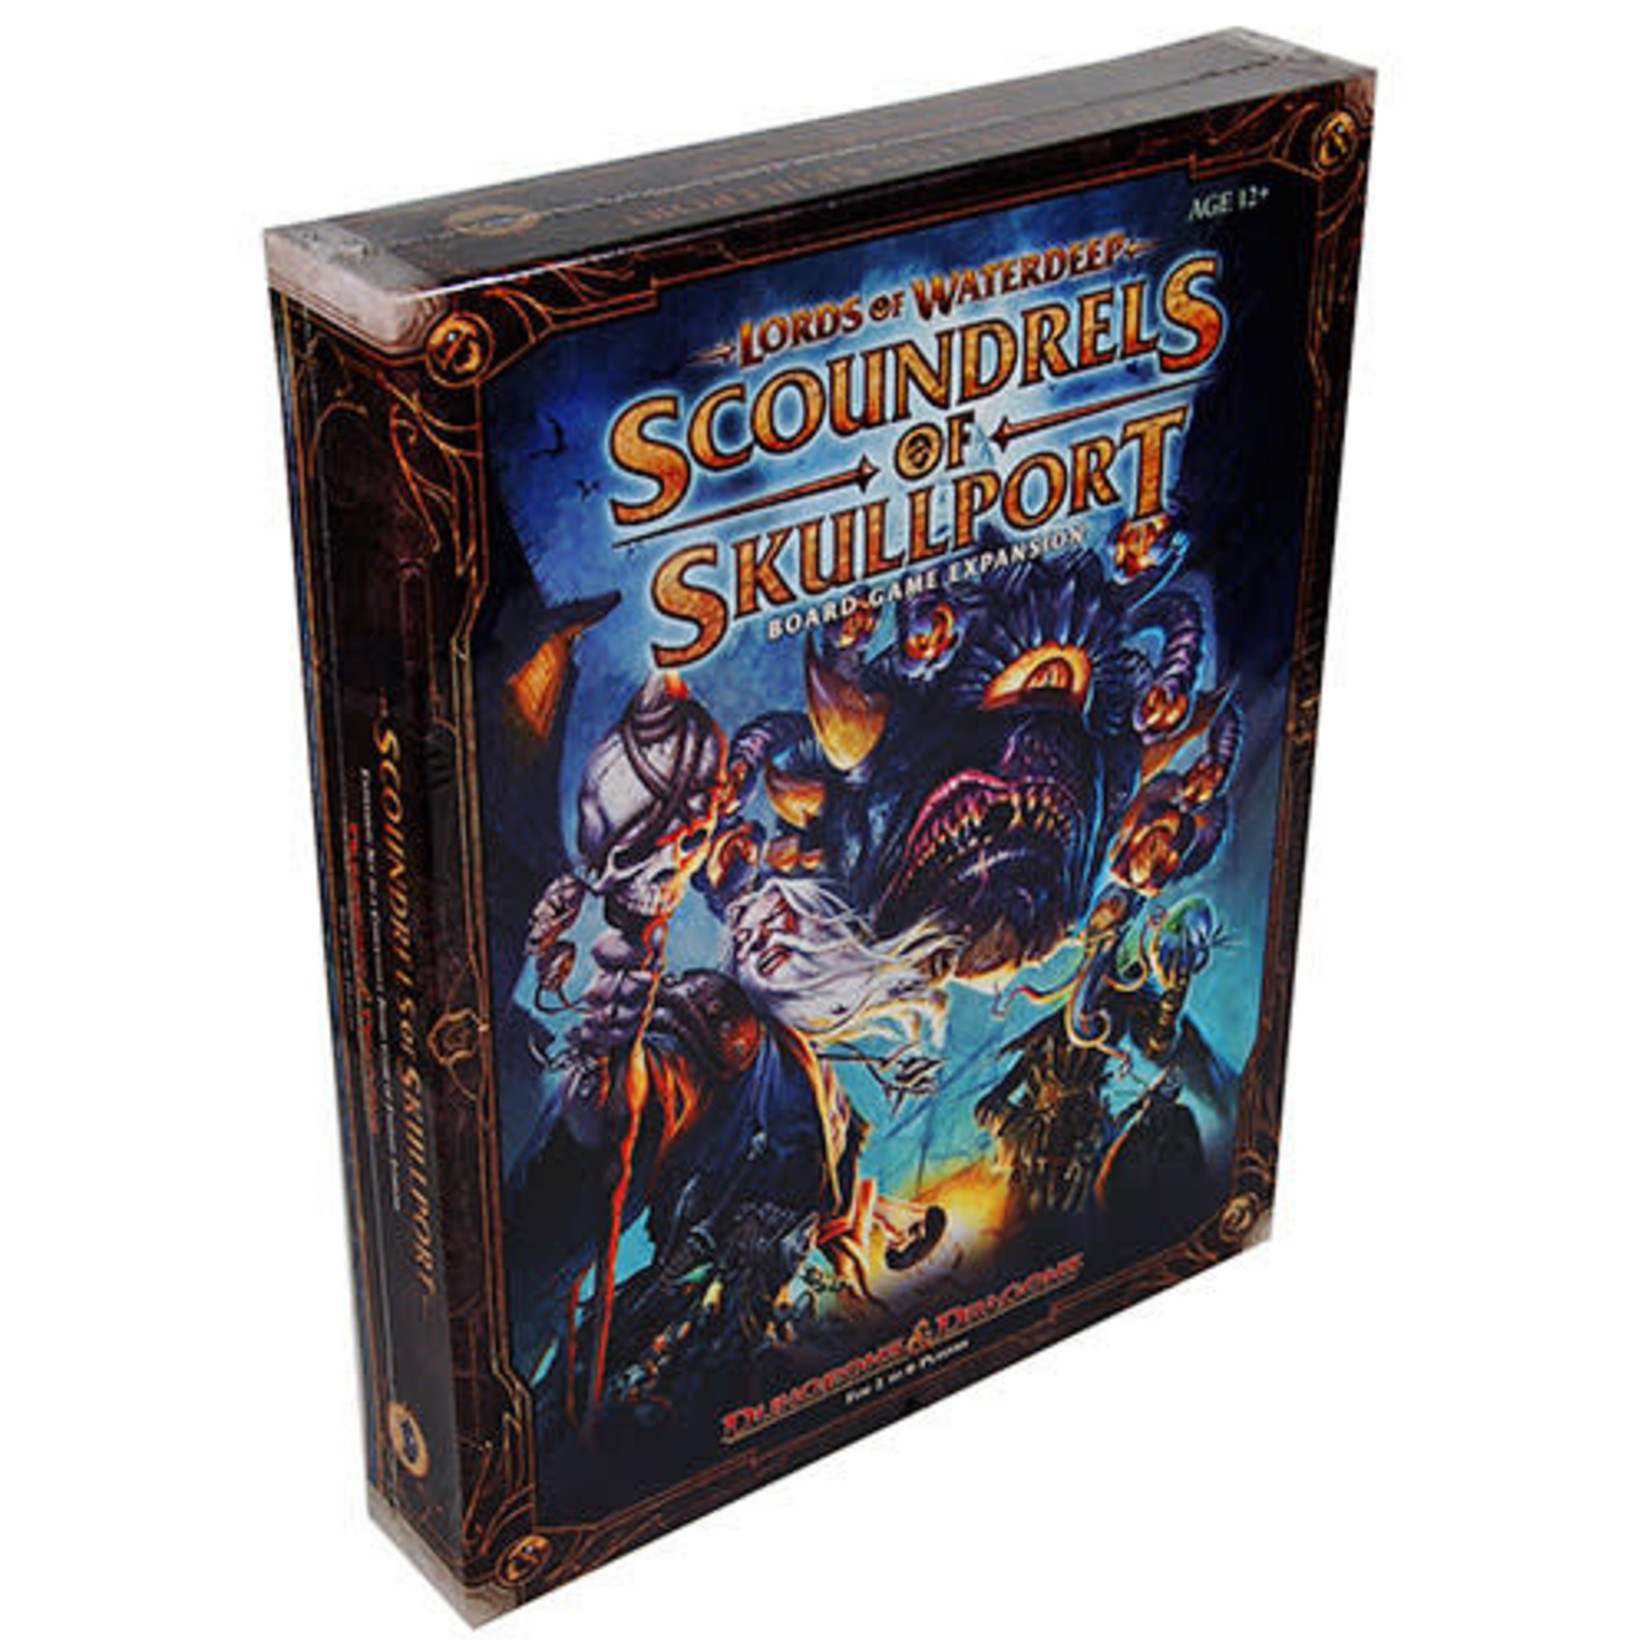 Wizards of the Coast Lords Of Waterdeep Scoundrels Of Skullport Expansion Set